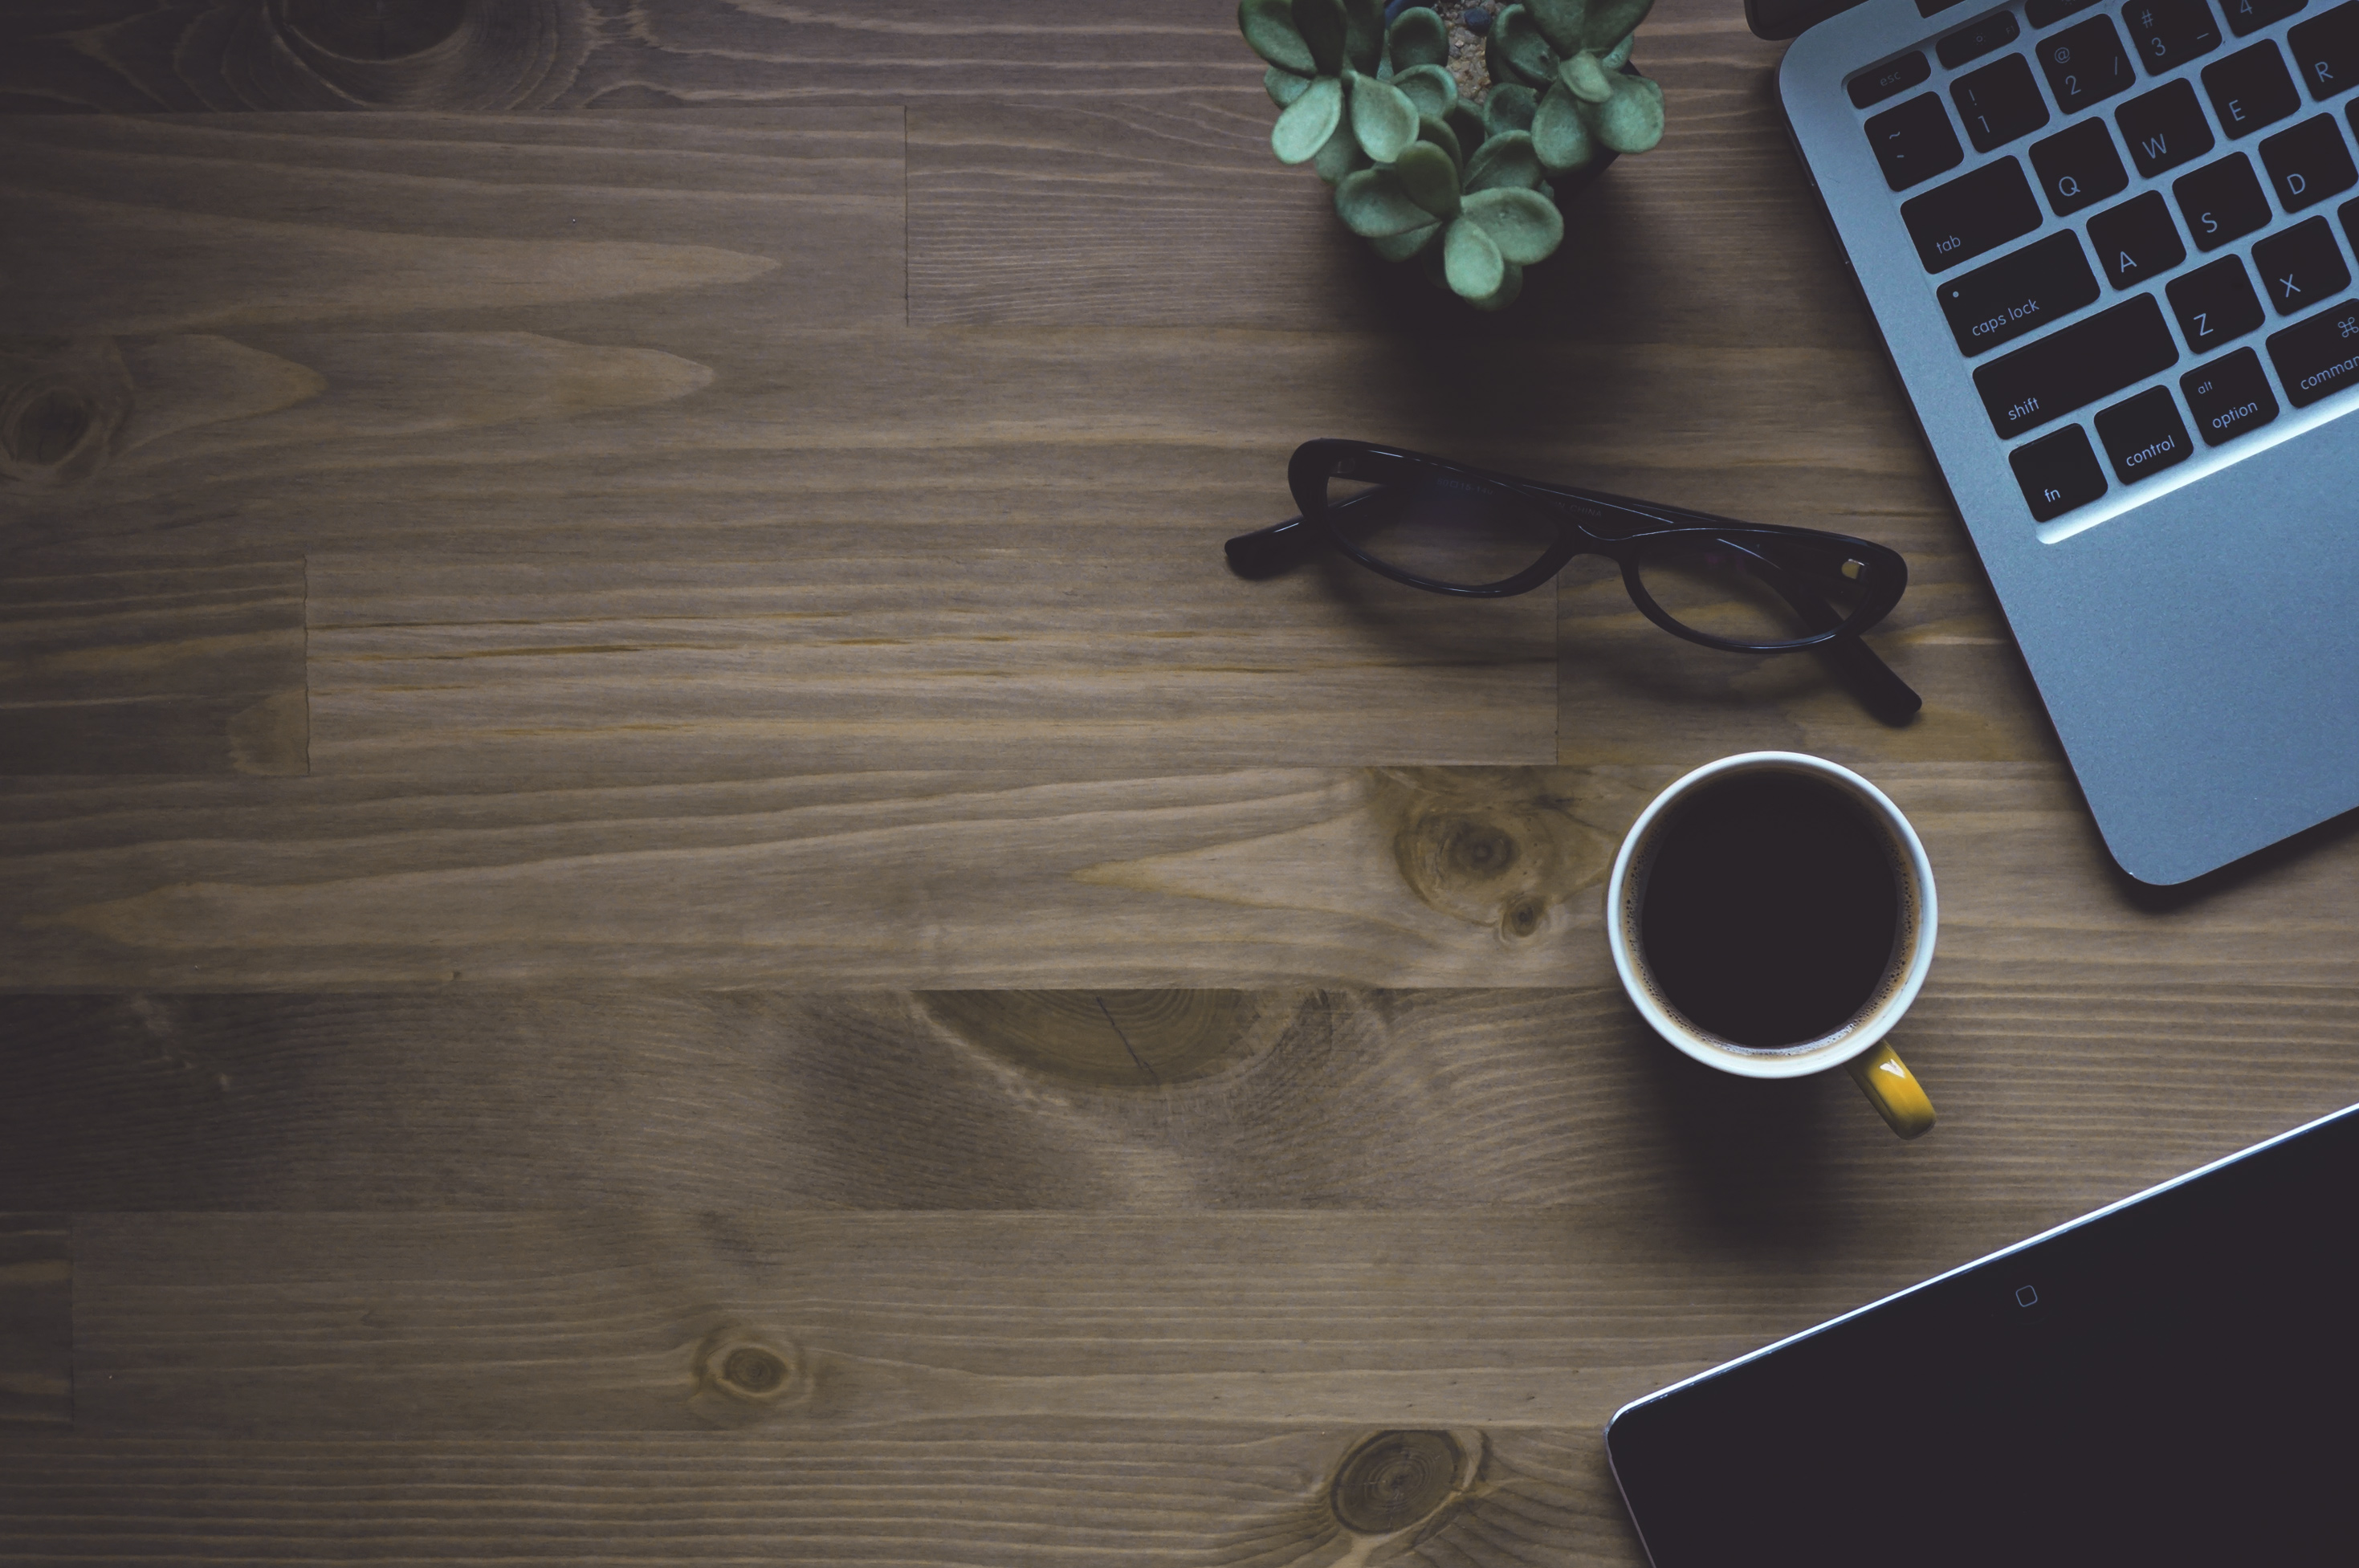 Free Images : laptop, desk, coffee, light, wood, technology, white ...